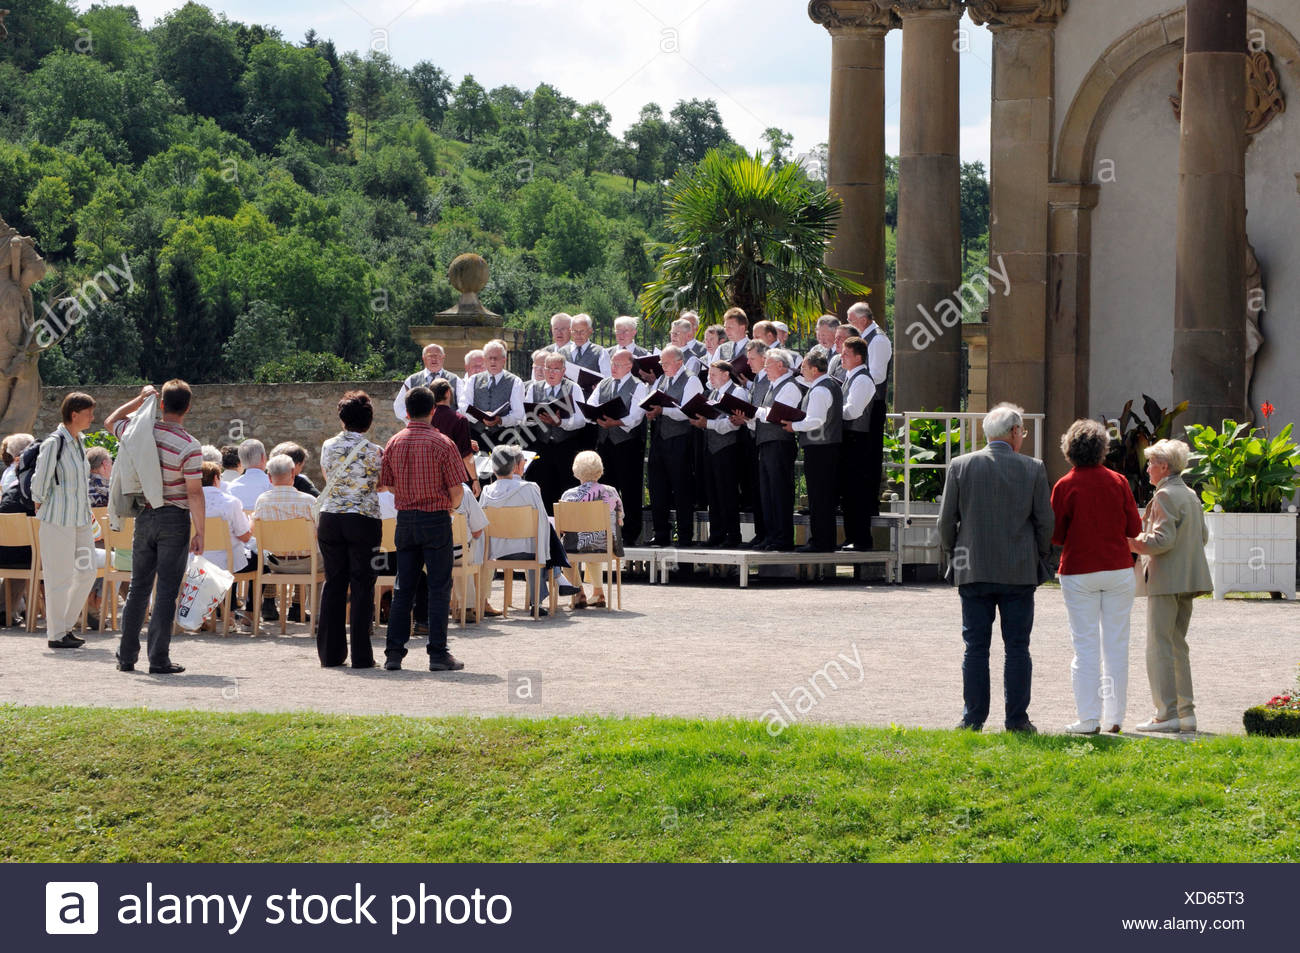 Park Concert of the Saengerbund Harmonie Weikersheim or the Weikersheim Harmony Singing Club, choir in front of the Orangerie of - Stock Image